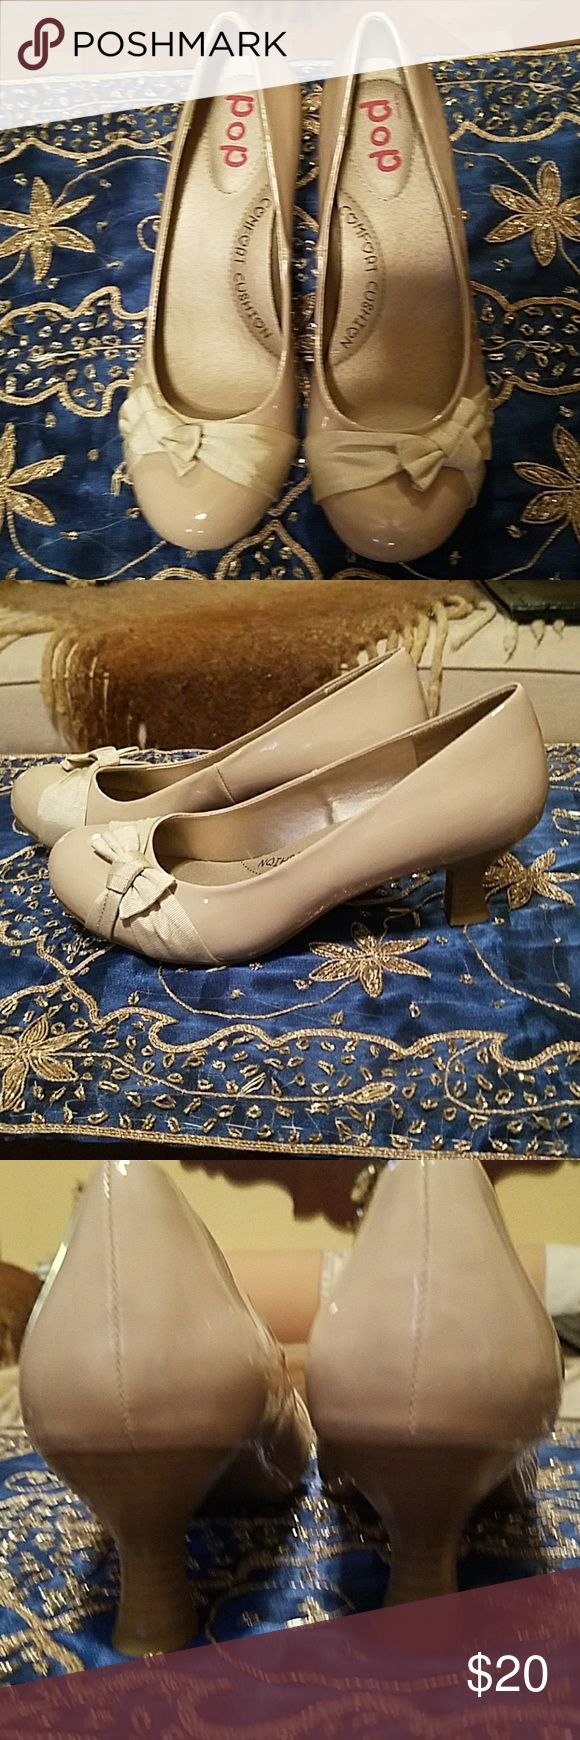 """POP Champaign pink 2"""" heels NWOT POP Champaign pink 2"""" heels NWOT, bows on toes, 10M. No scars, scuffs or scratches. POP Shoes Heels"""